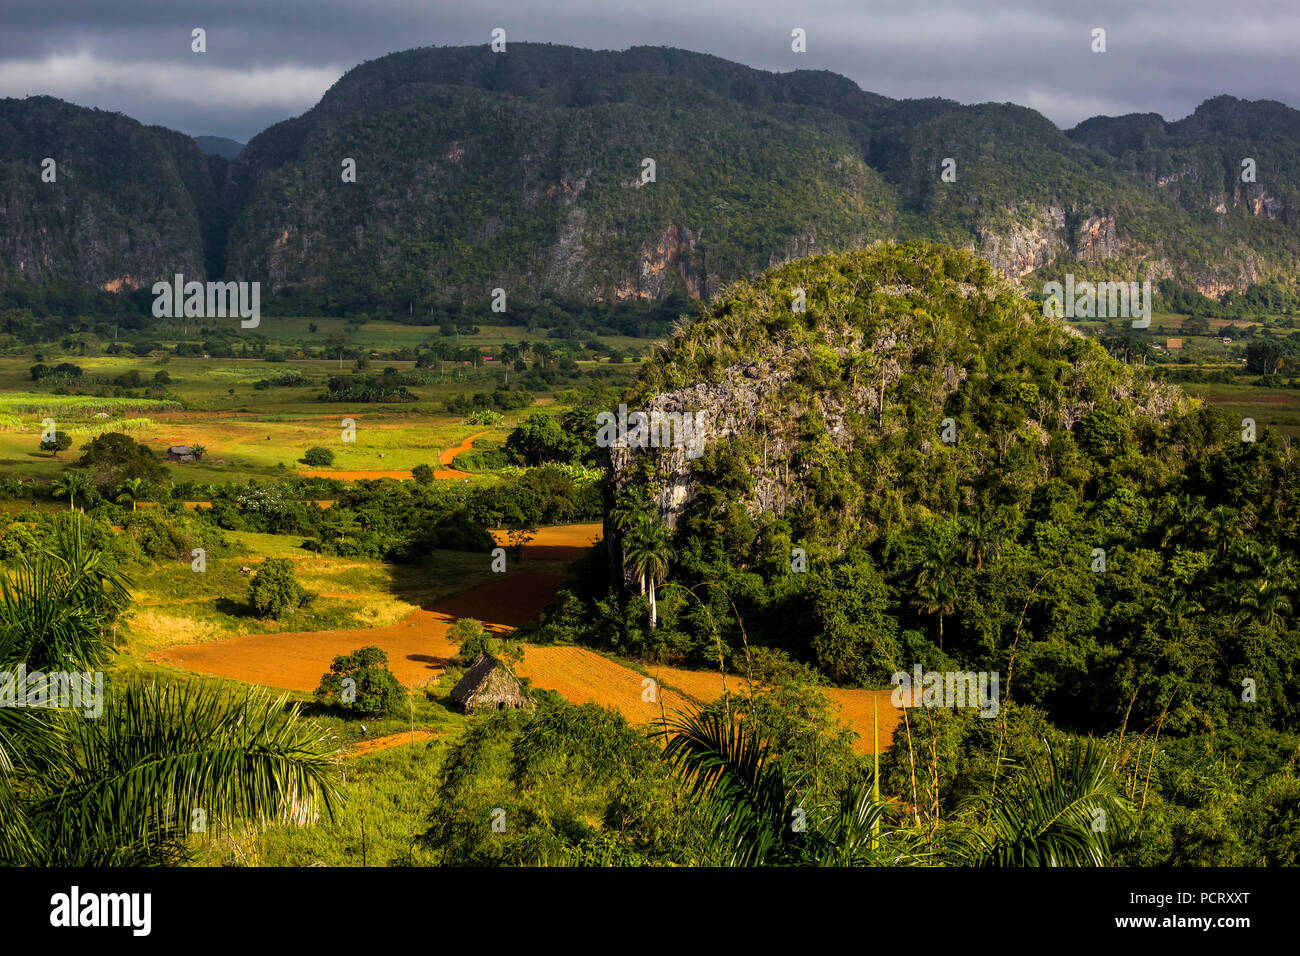 Farmhouse, farmer cottage, barn for drying tobacco leaves, tobacco fields and the mountains of the Mogotes, Viñales Valley with karst mountains, Viñales, Pinar del Río province, Cuba, North America, Cuba - Stock Image